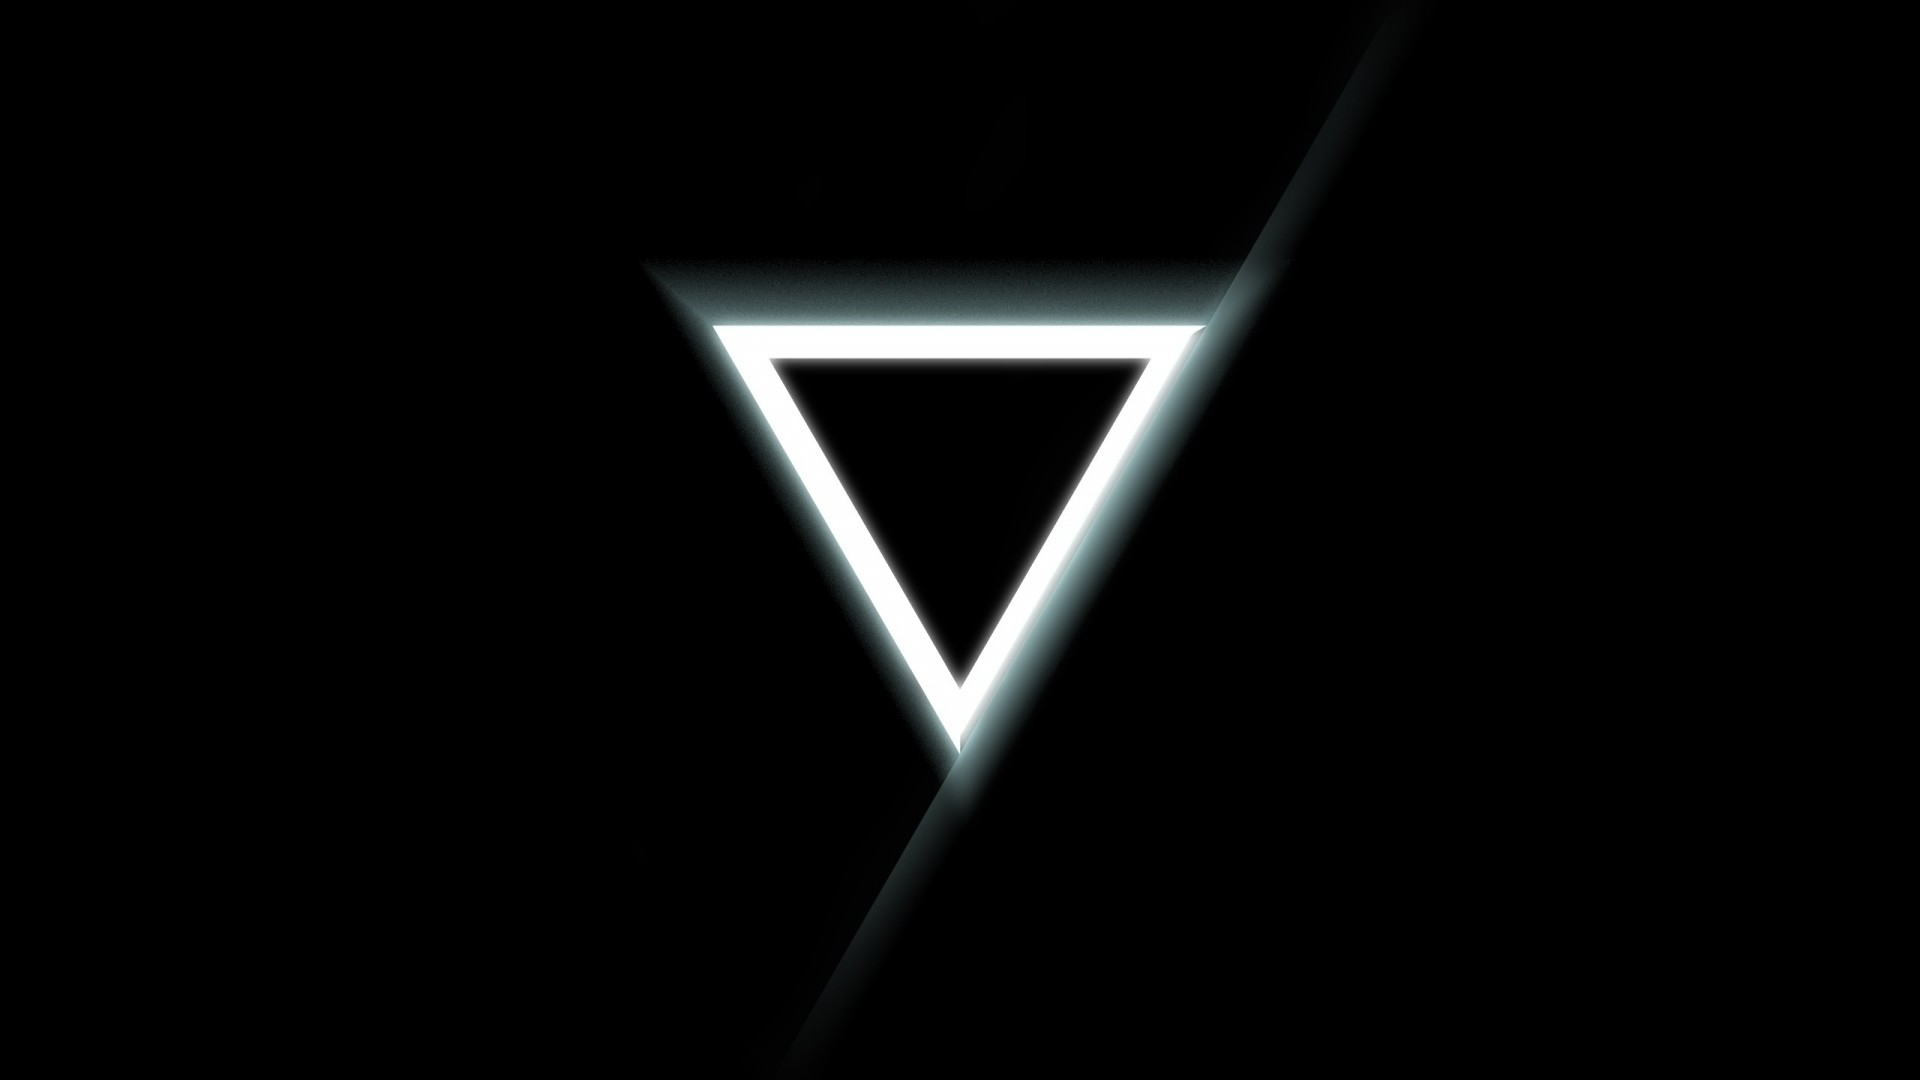 Preview wallpaper triangle, inverted, black, white 1920×1080